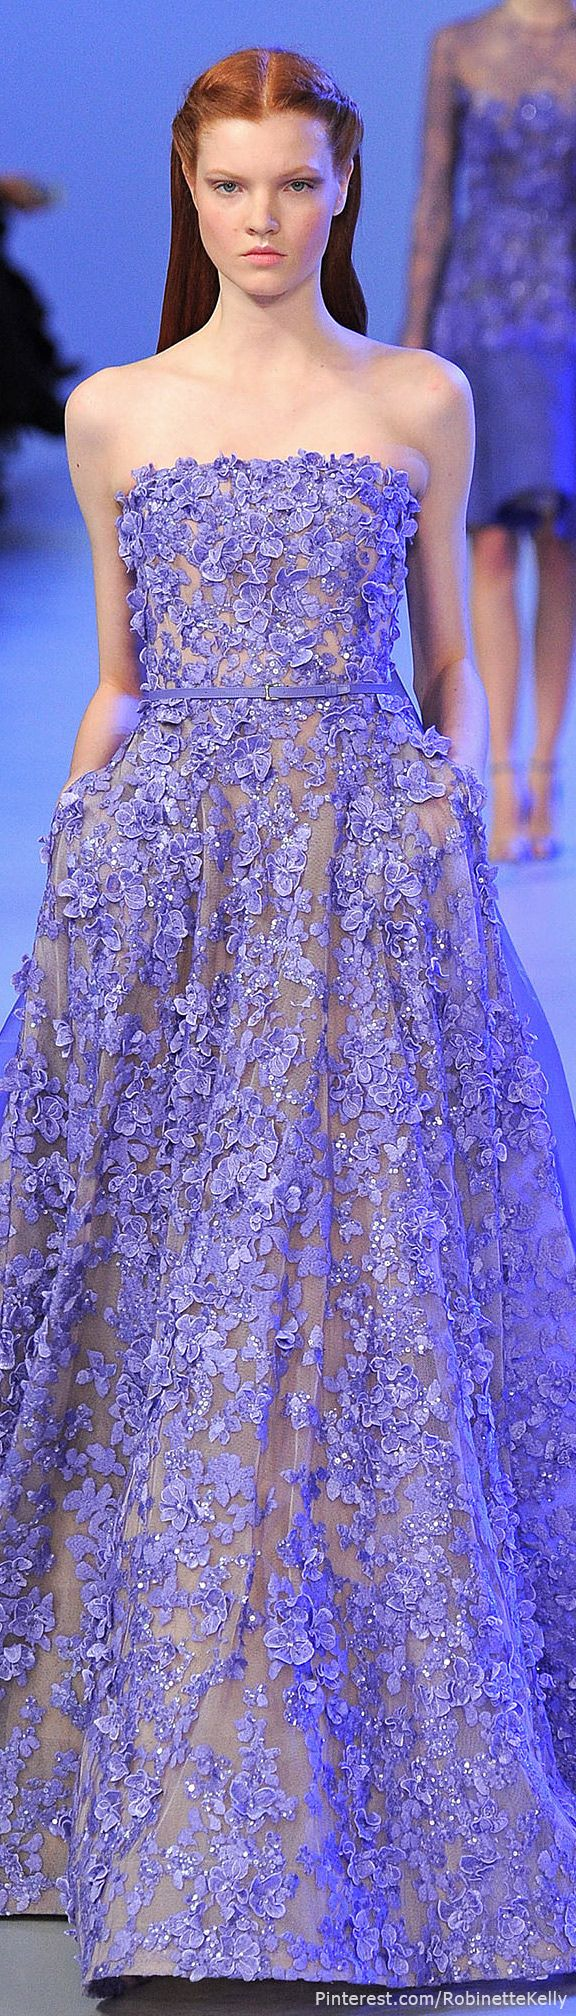 81 best Lavender Couture images on Pinterest | Evening gowns ...